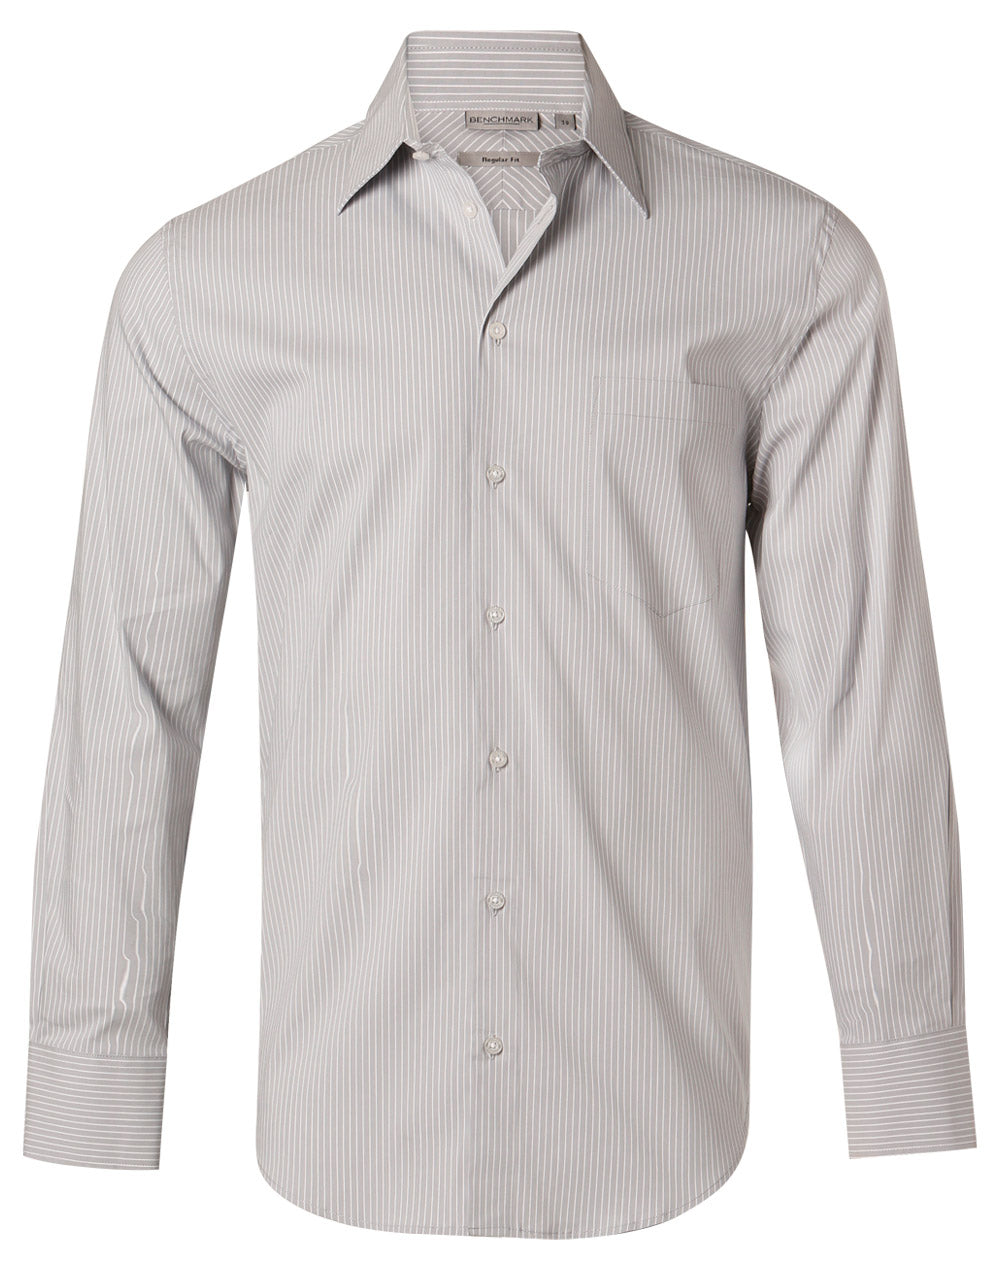 Winning Spirit Men's Ticking Stripe Long Sleeve Shirt (M7200L)